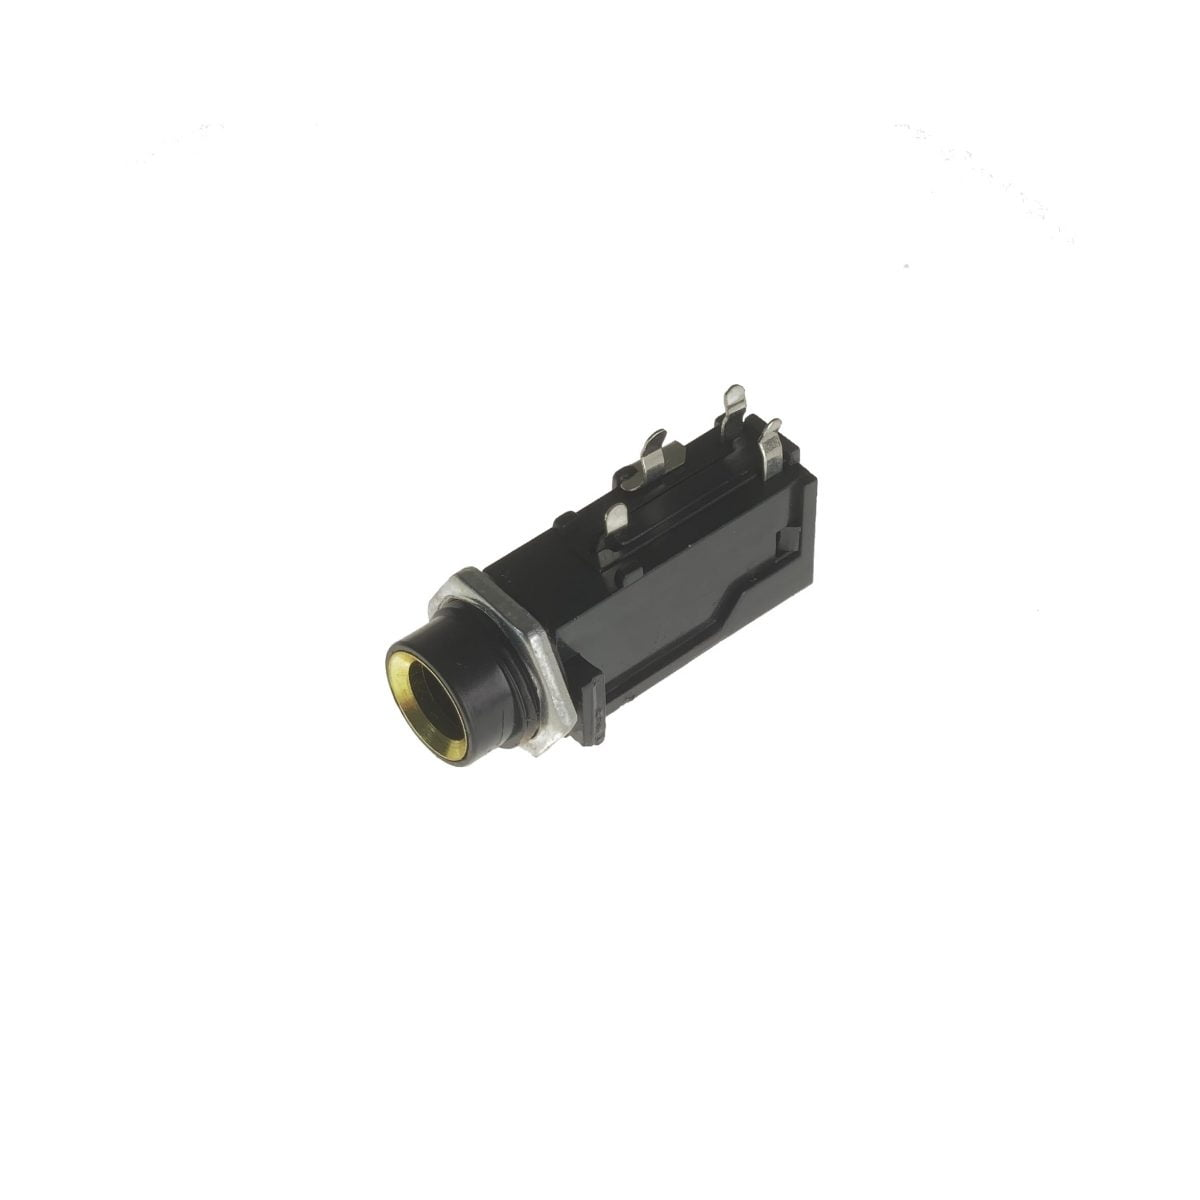 Yamaha Replacement 1/4″ Stereo Jack/Connector